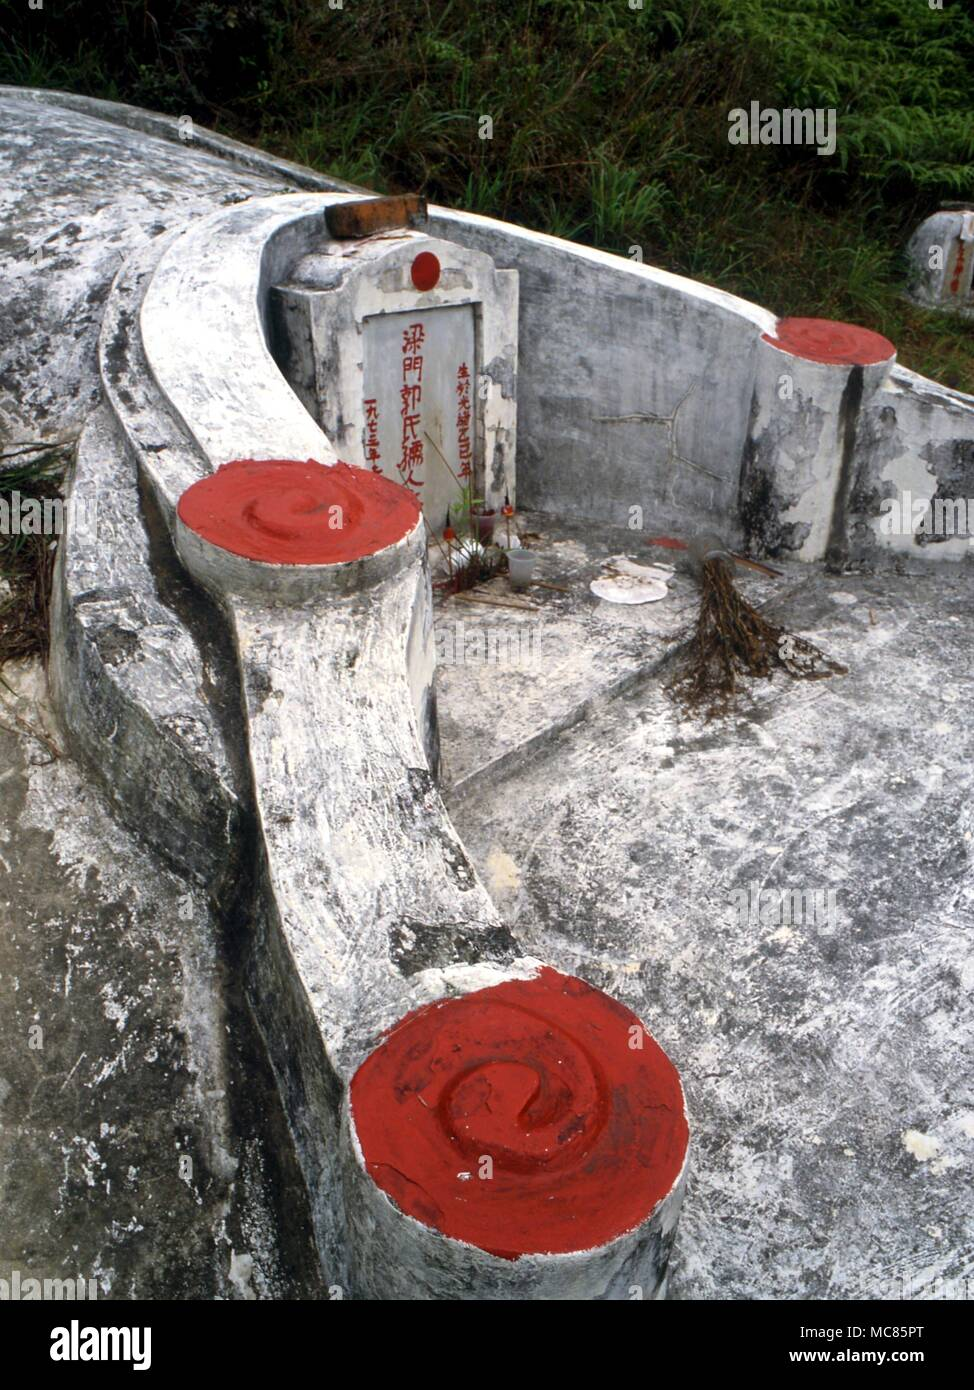 GRAVEYARD Chinese tombs.  The placing of Chinese tombs is determined stricly by Feng Shui considerations, as is their decoration.  Chinese burial ground near Hong Kong Stock Photo